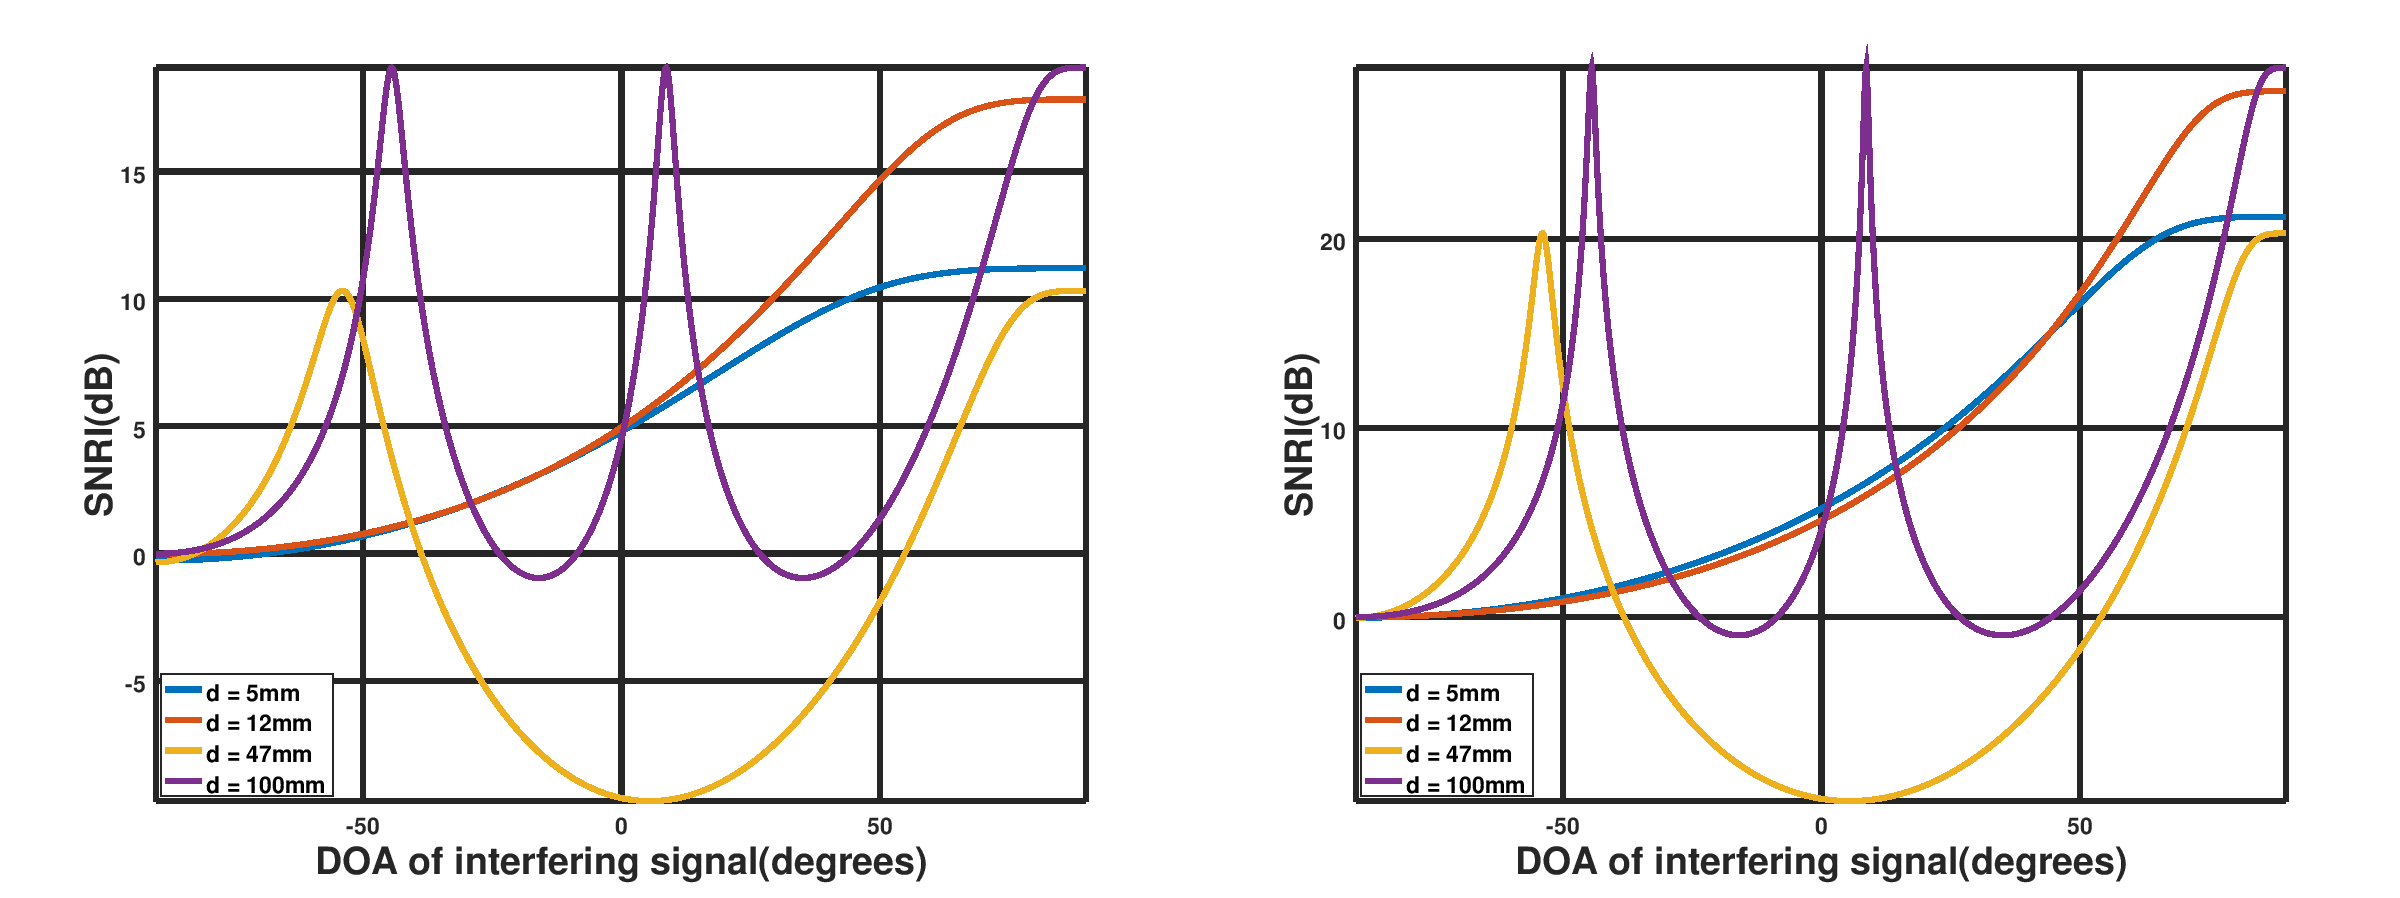 SNRI (dB) for dierent DOA(degrees) and d. Left is for  = 20dB, right is for  = 30dB